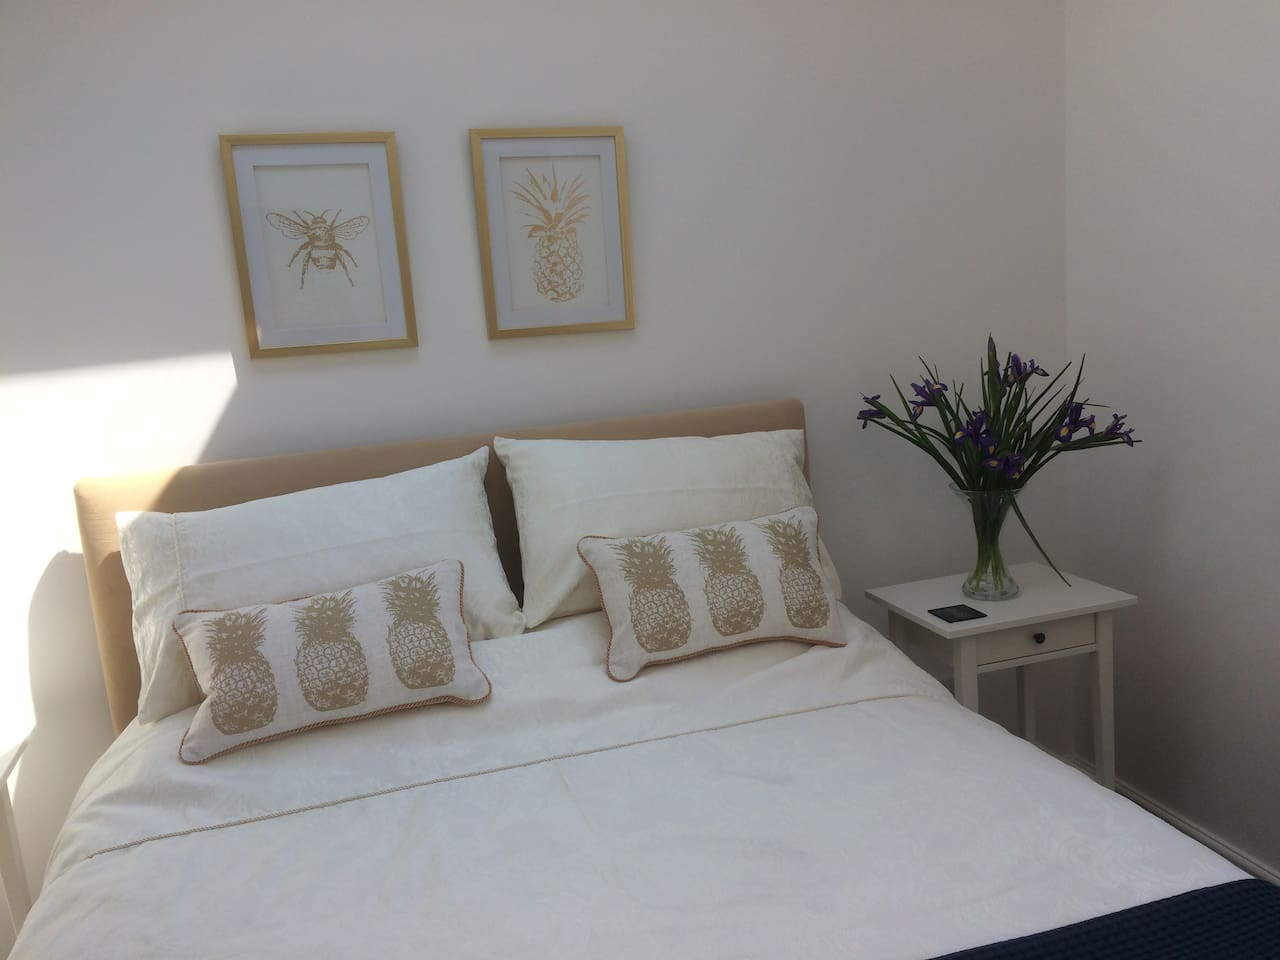 Clean, bright and airy room with Kingsize bed and beautiful en-suite - Quality bedding for a good nights sleep zzzzz